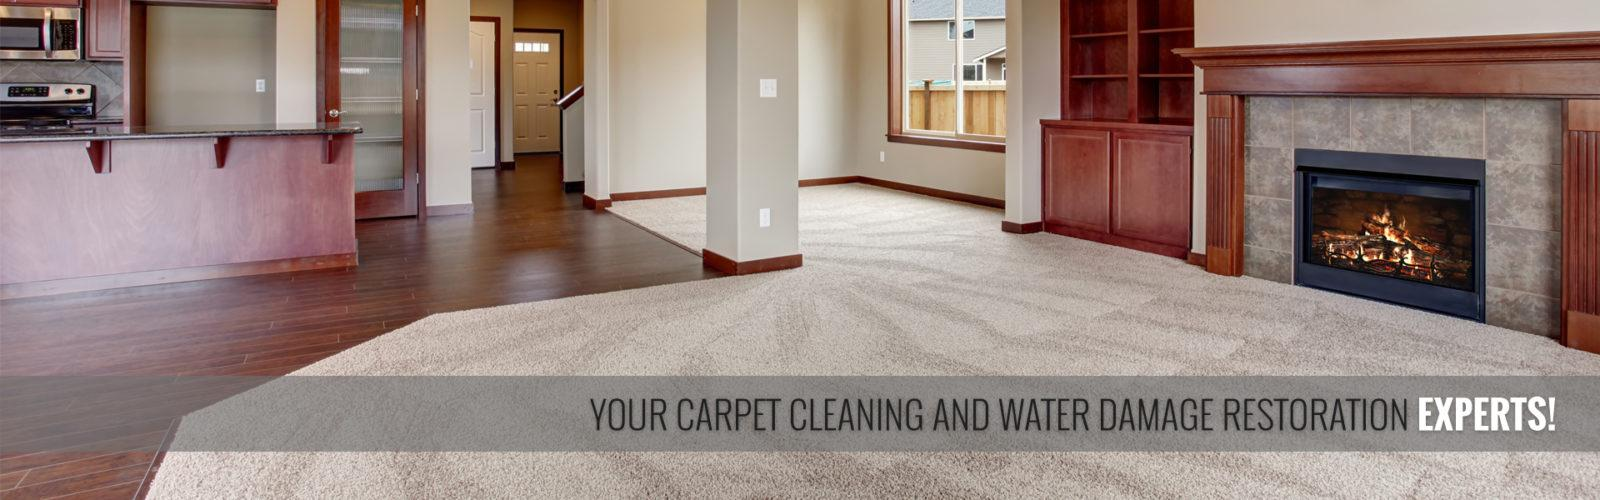 Tim's Carpet Cleaning